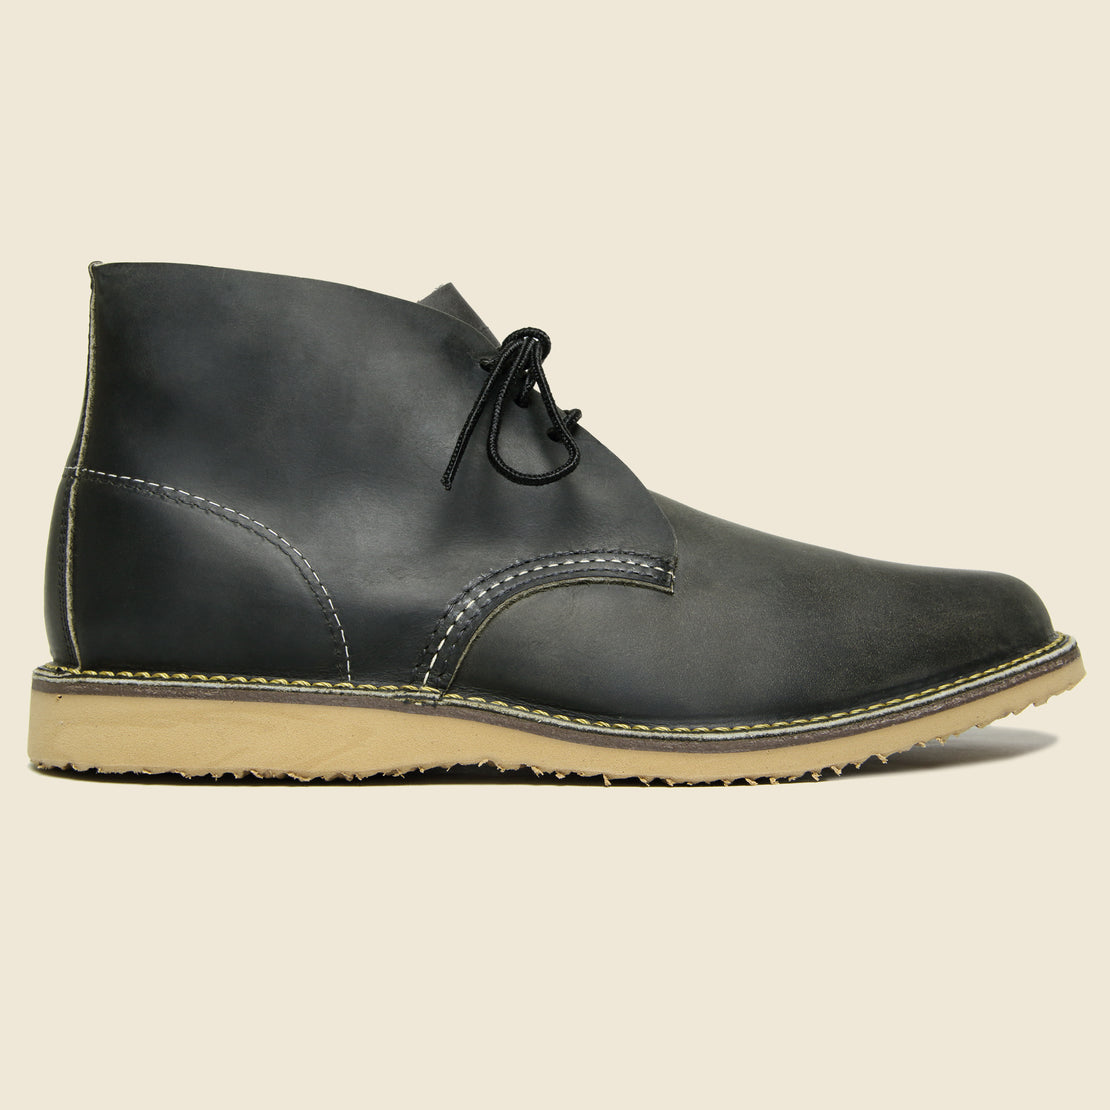 Red Wing Weekender Chukka - Charcoal